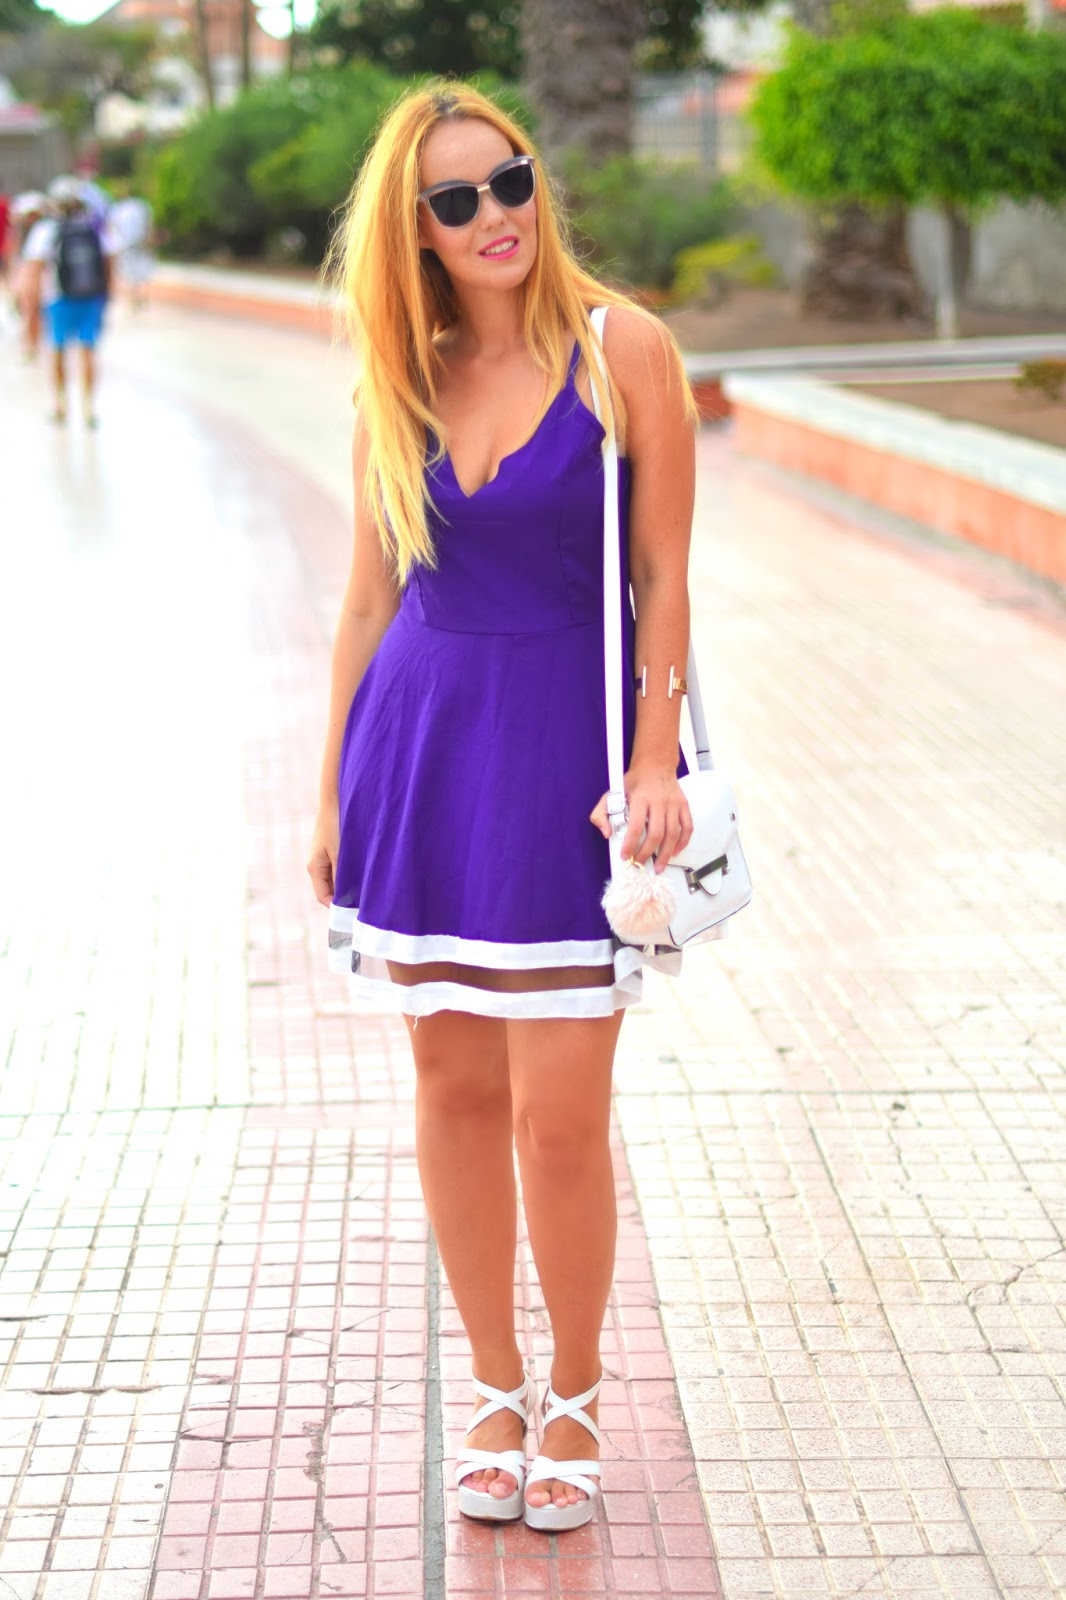 nery hdez, znu , zerouv, dress, blonde , Sammydress, blondedge